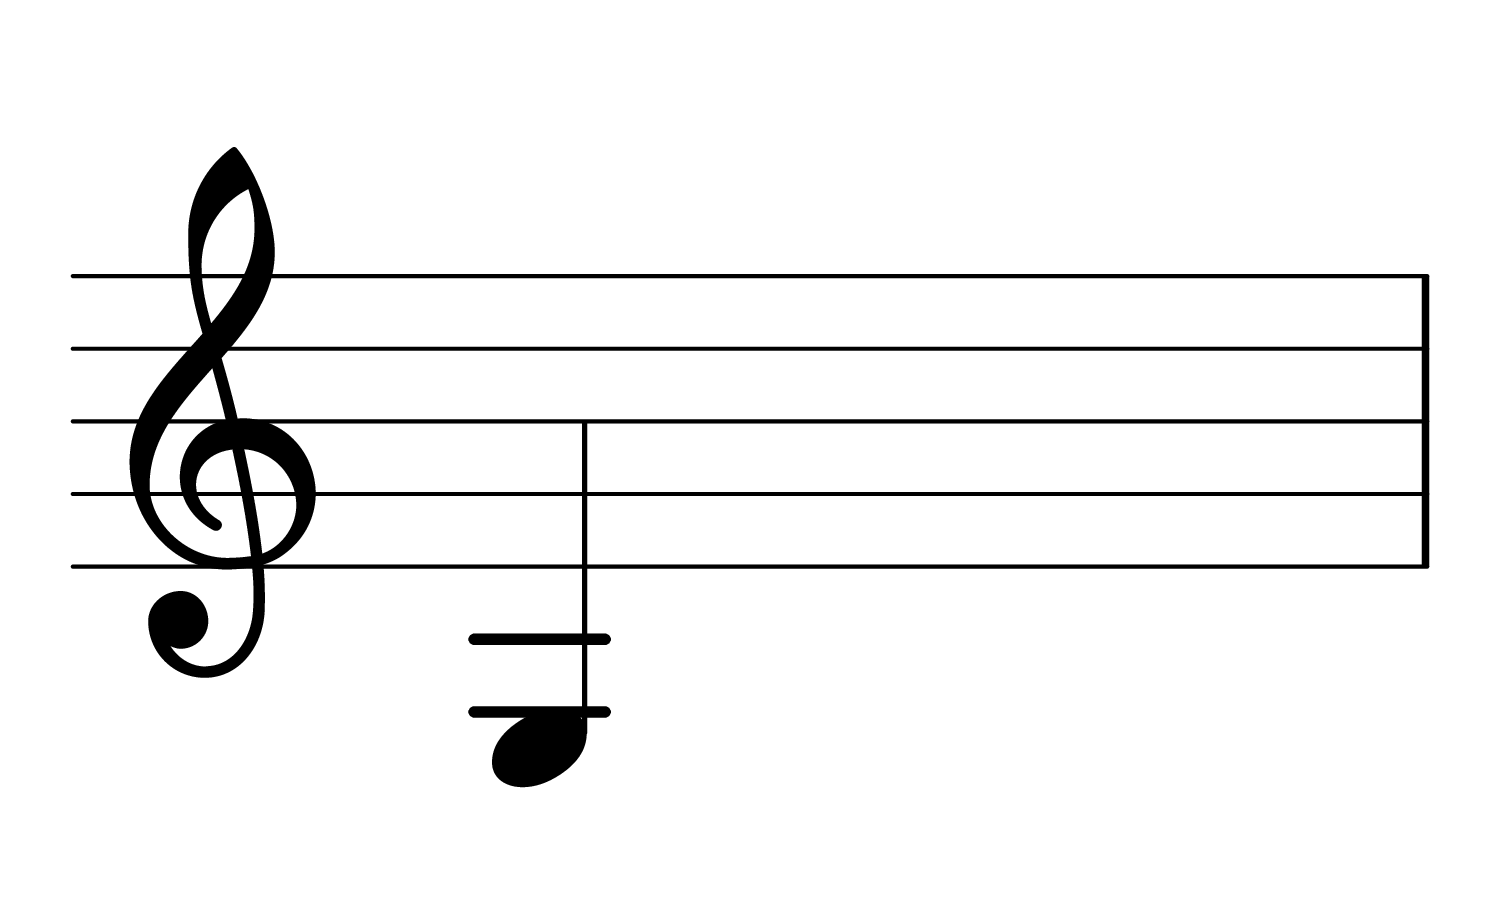 The note G2 on the treble clef.